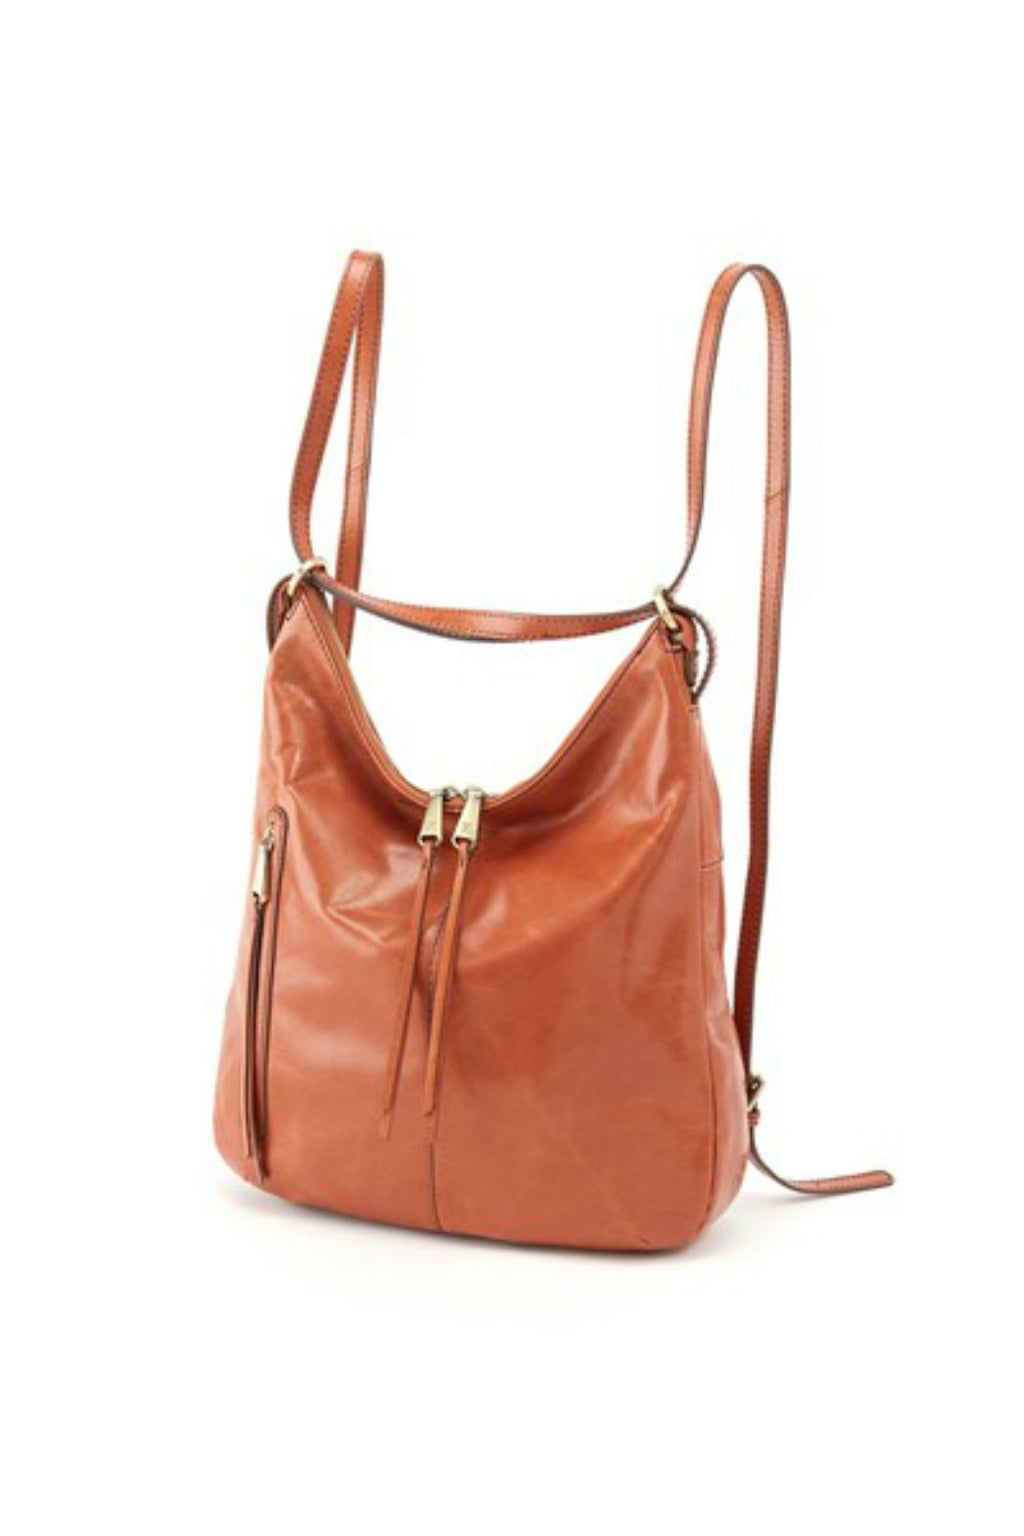 Hobo Merrin Everyday Convertible Backpack in Clay